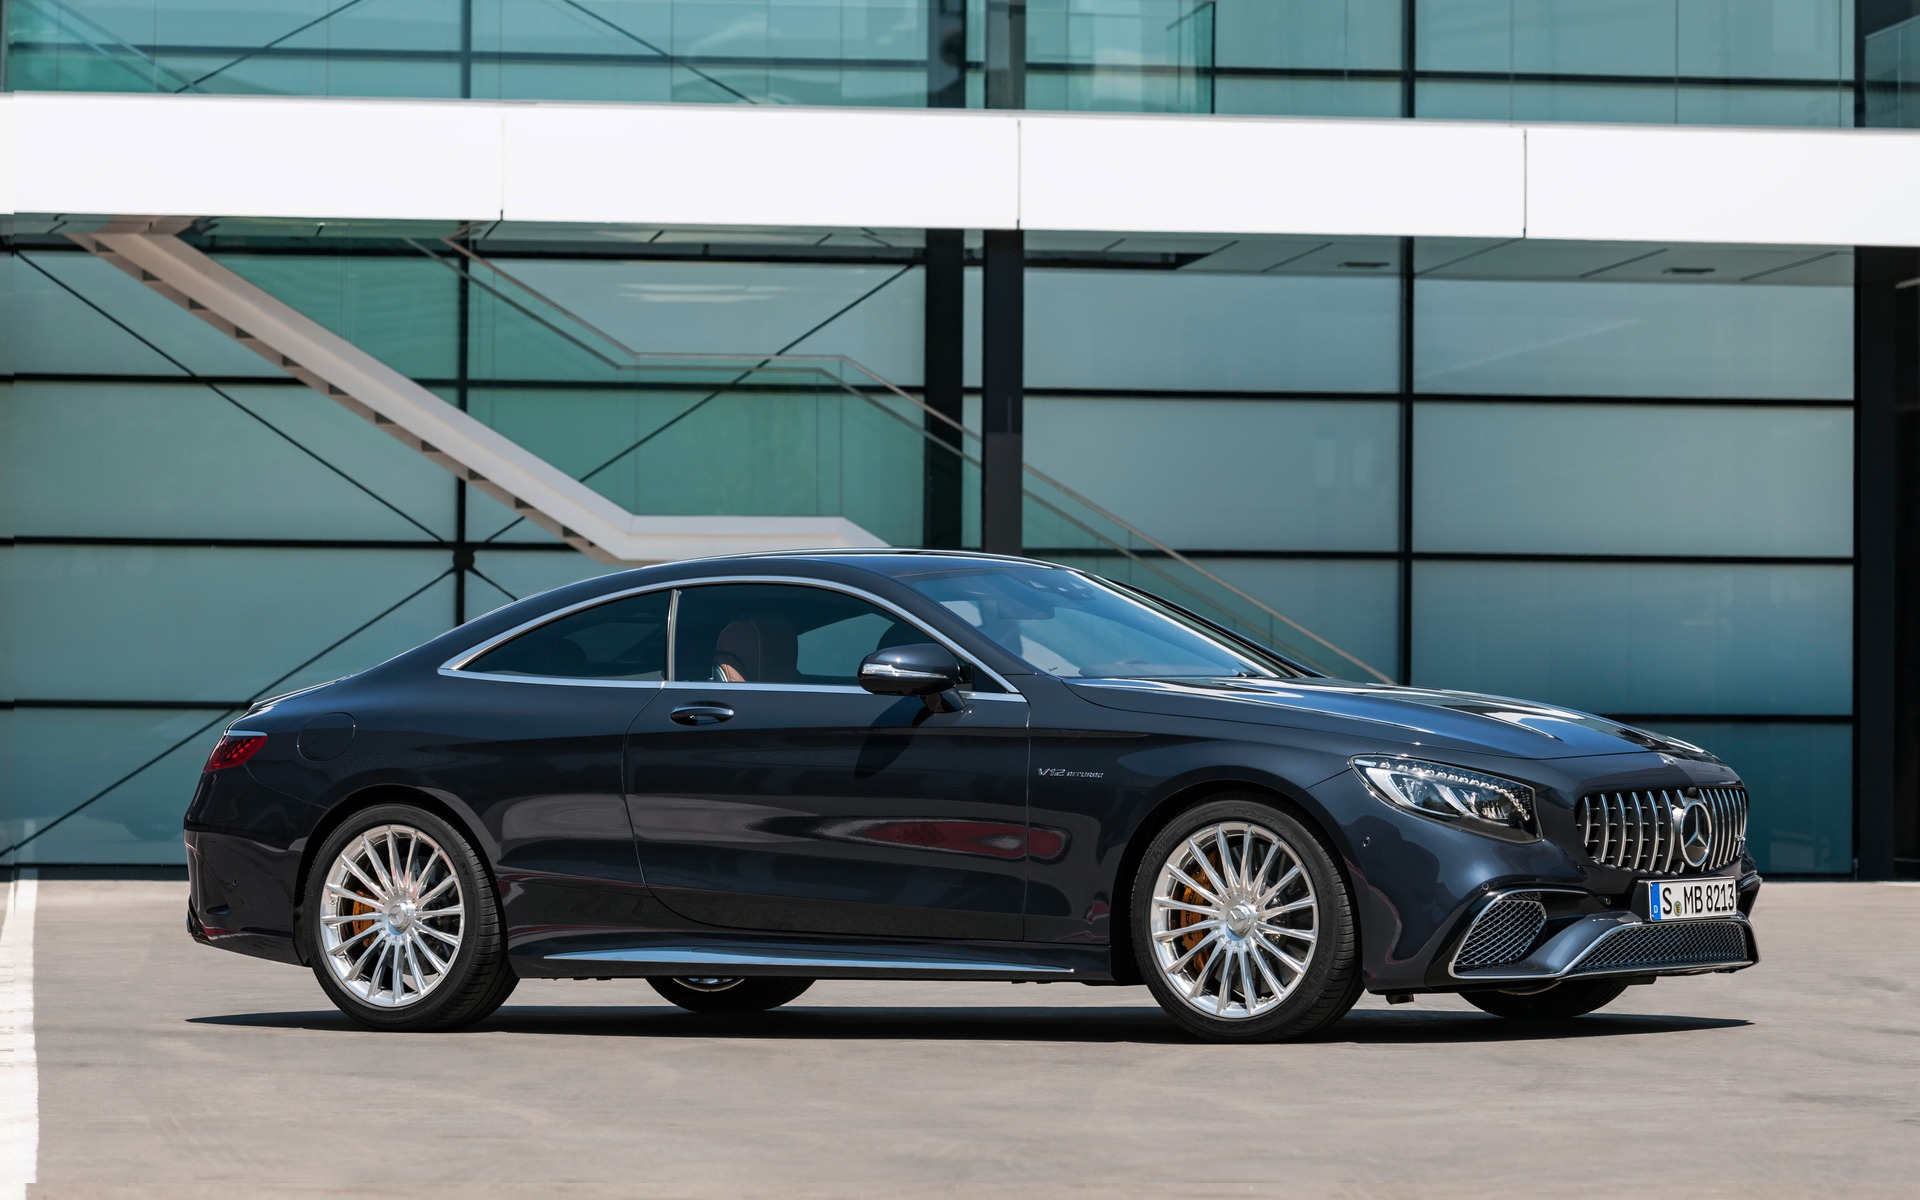 Updates for the 2018 Mercedes-Benz S-Class Coupe and Cabriolet - 2/46